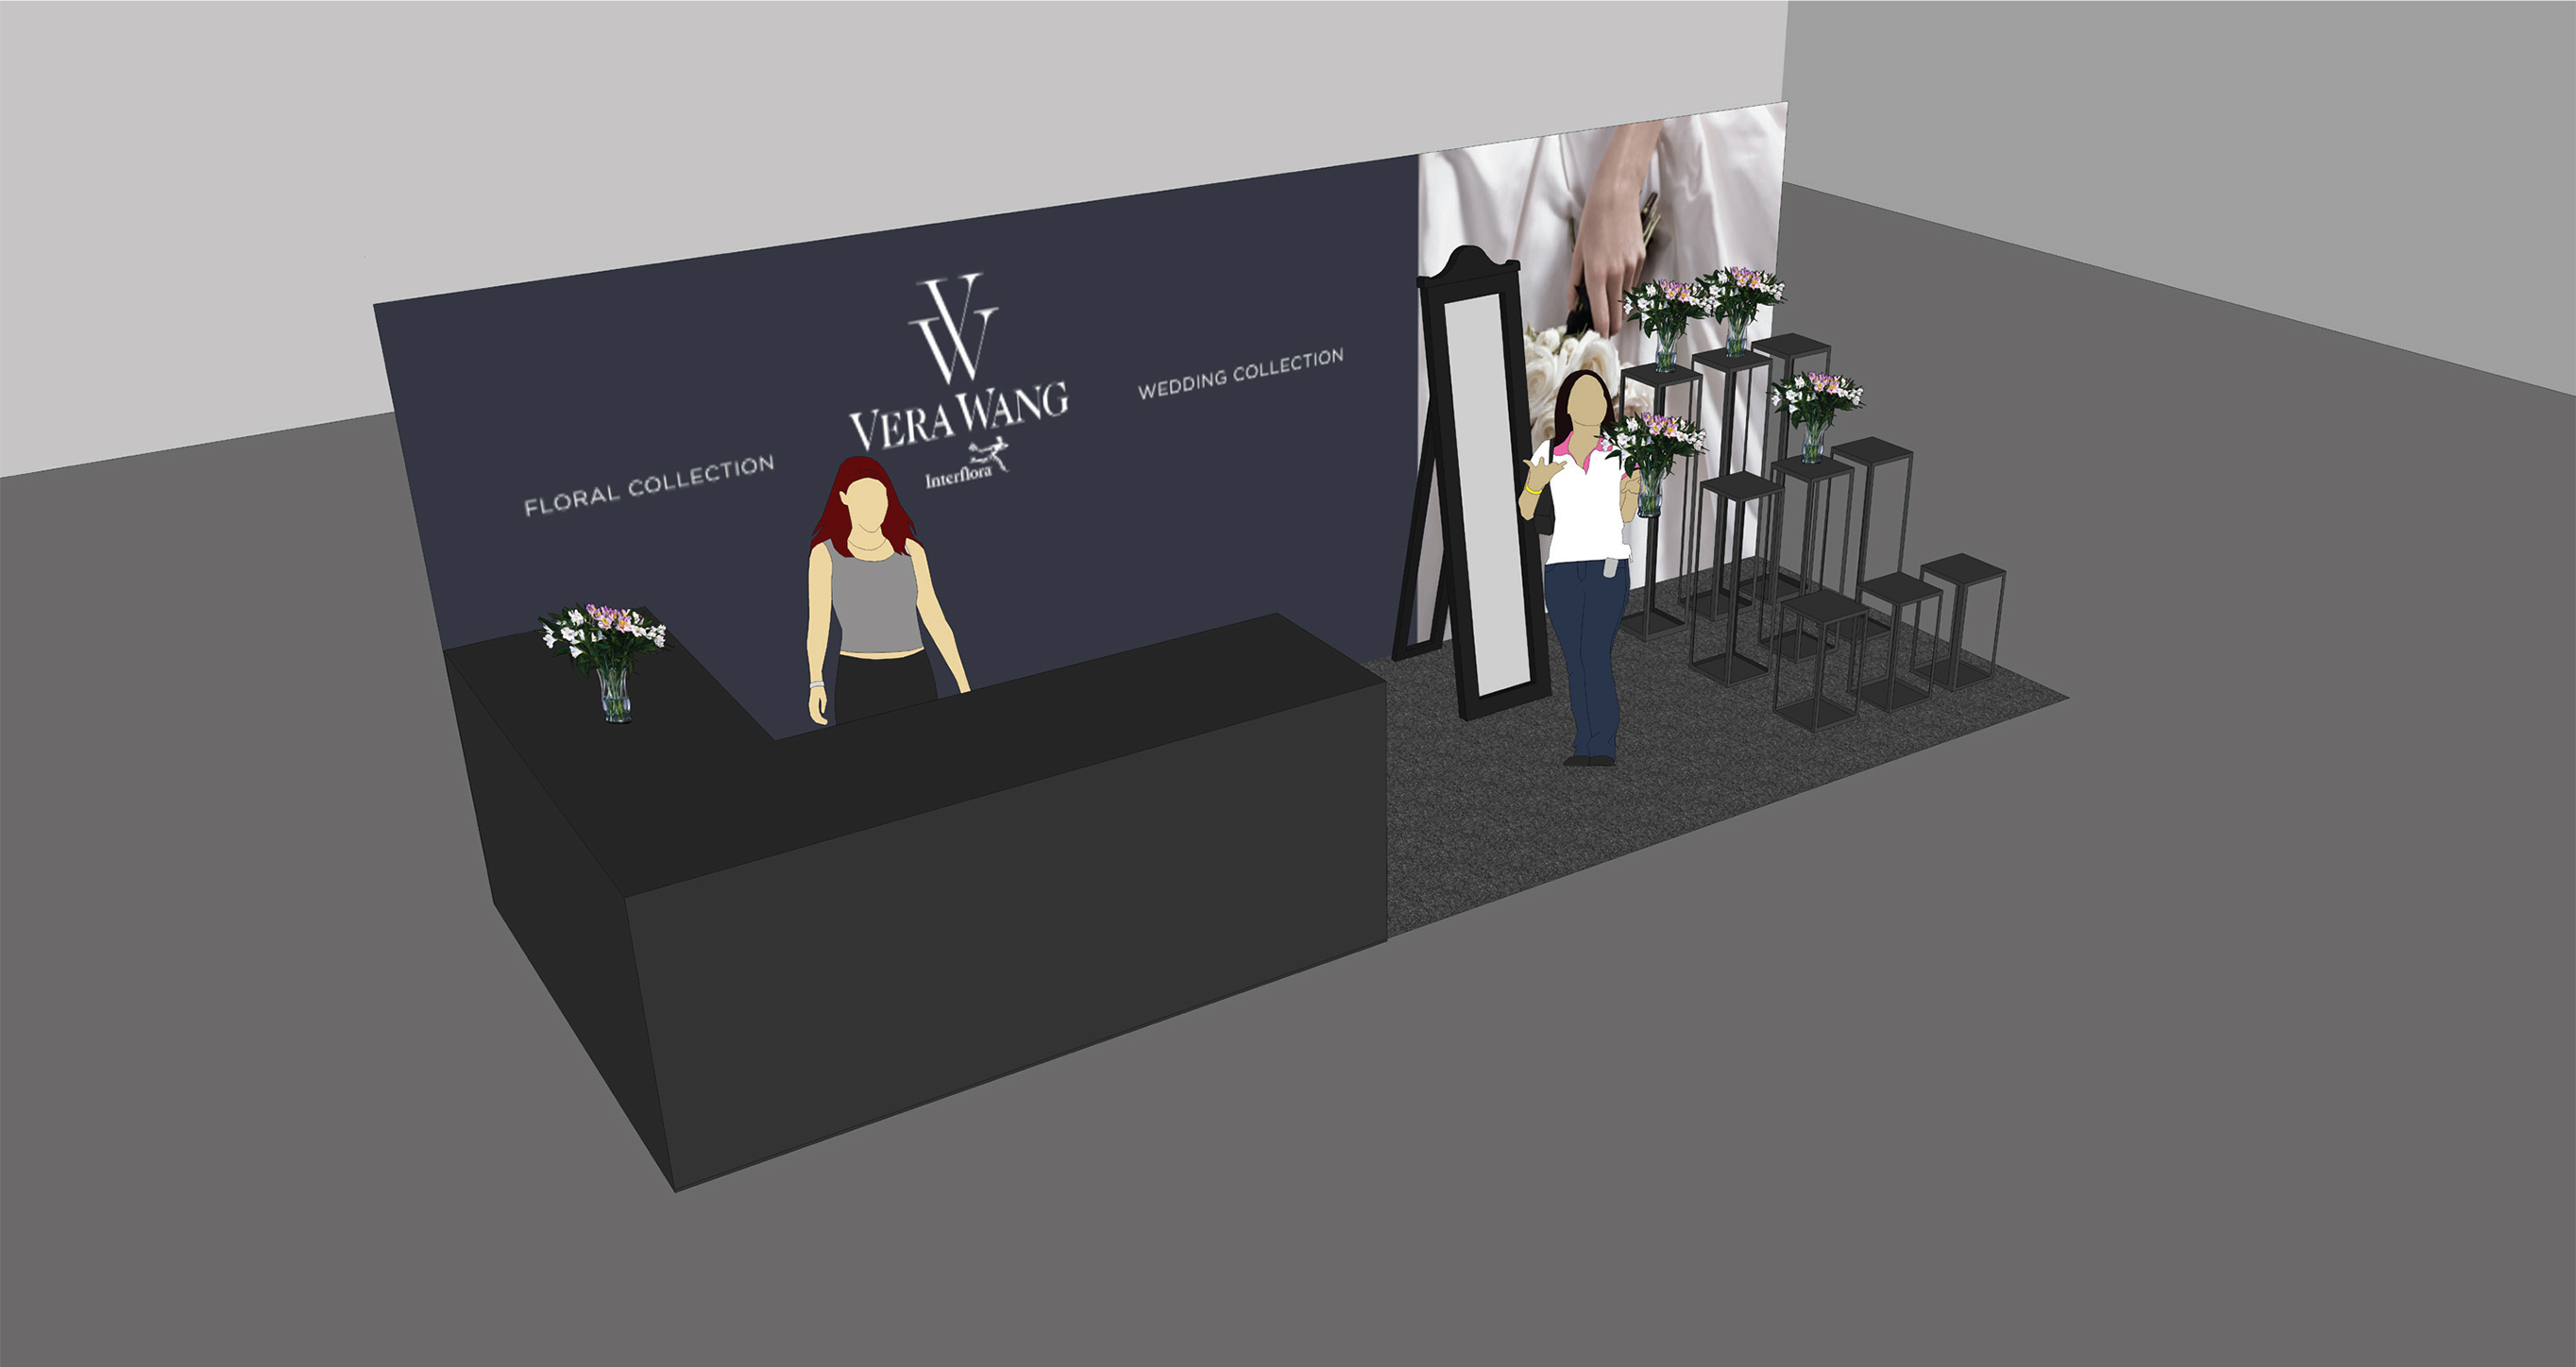 Vera Wang exhibition stand design